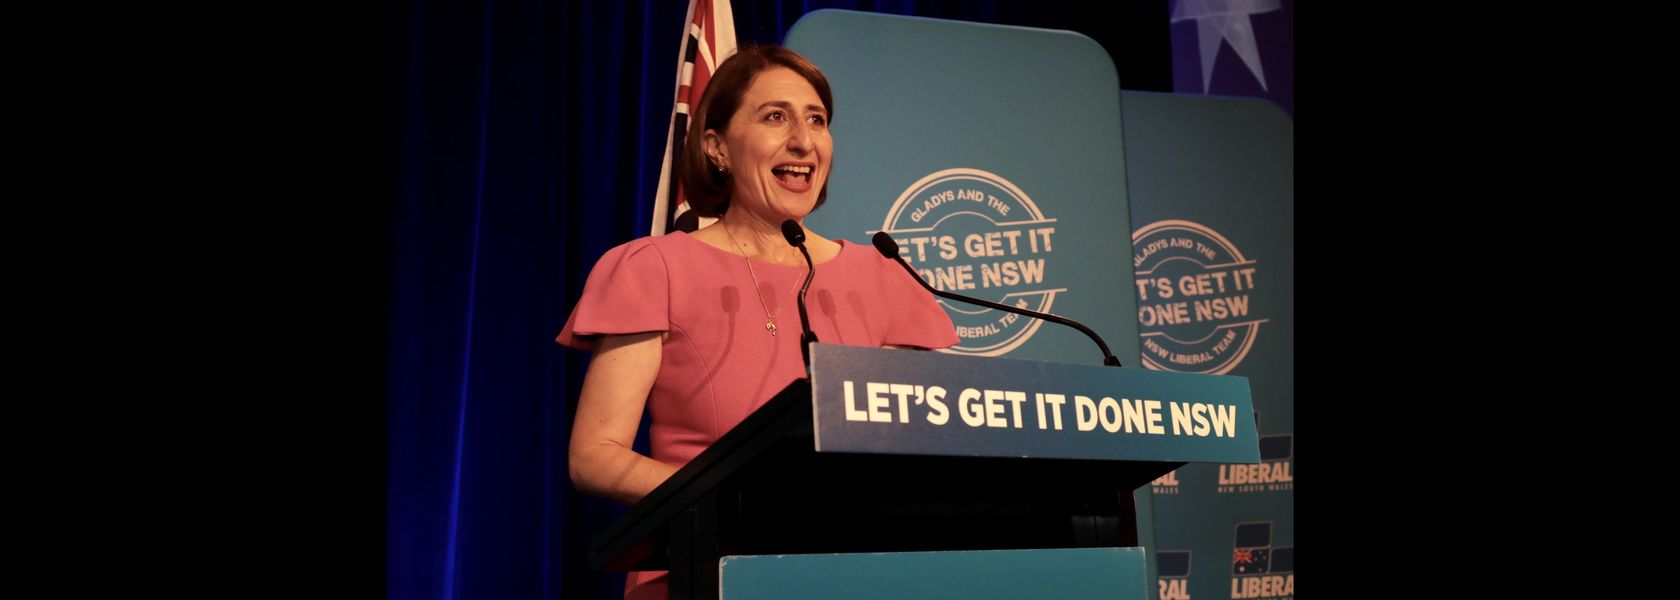 Coalition returned to New South Wales